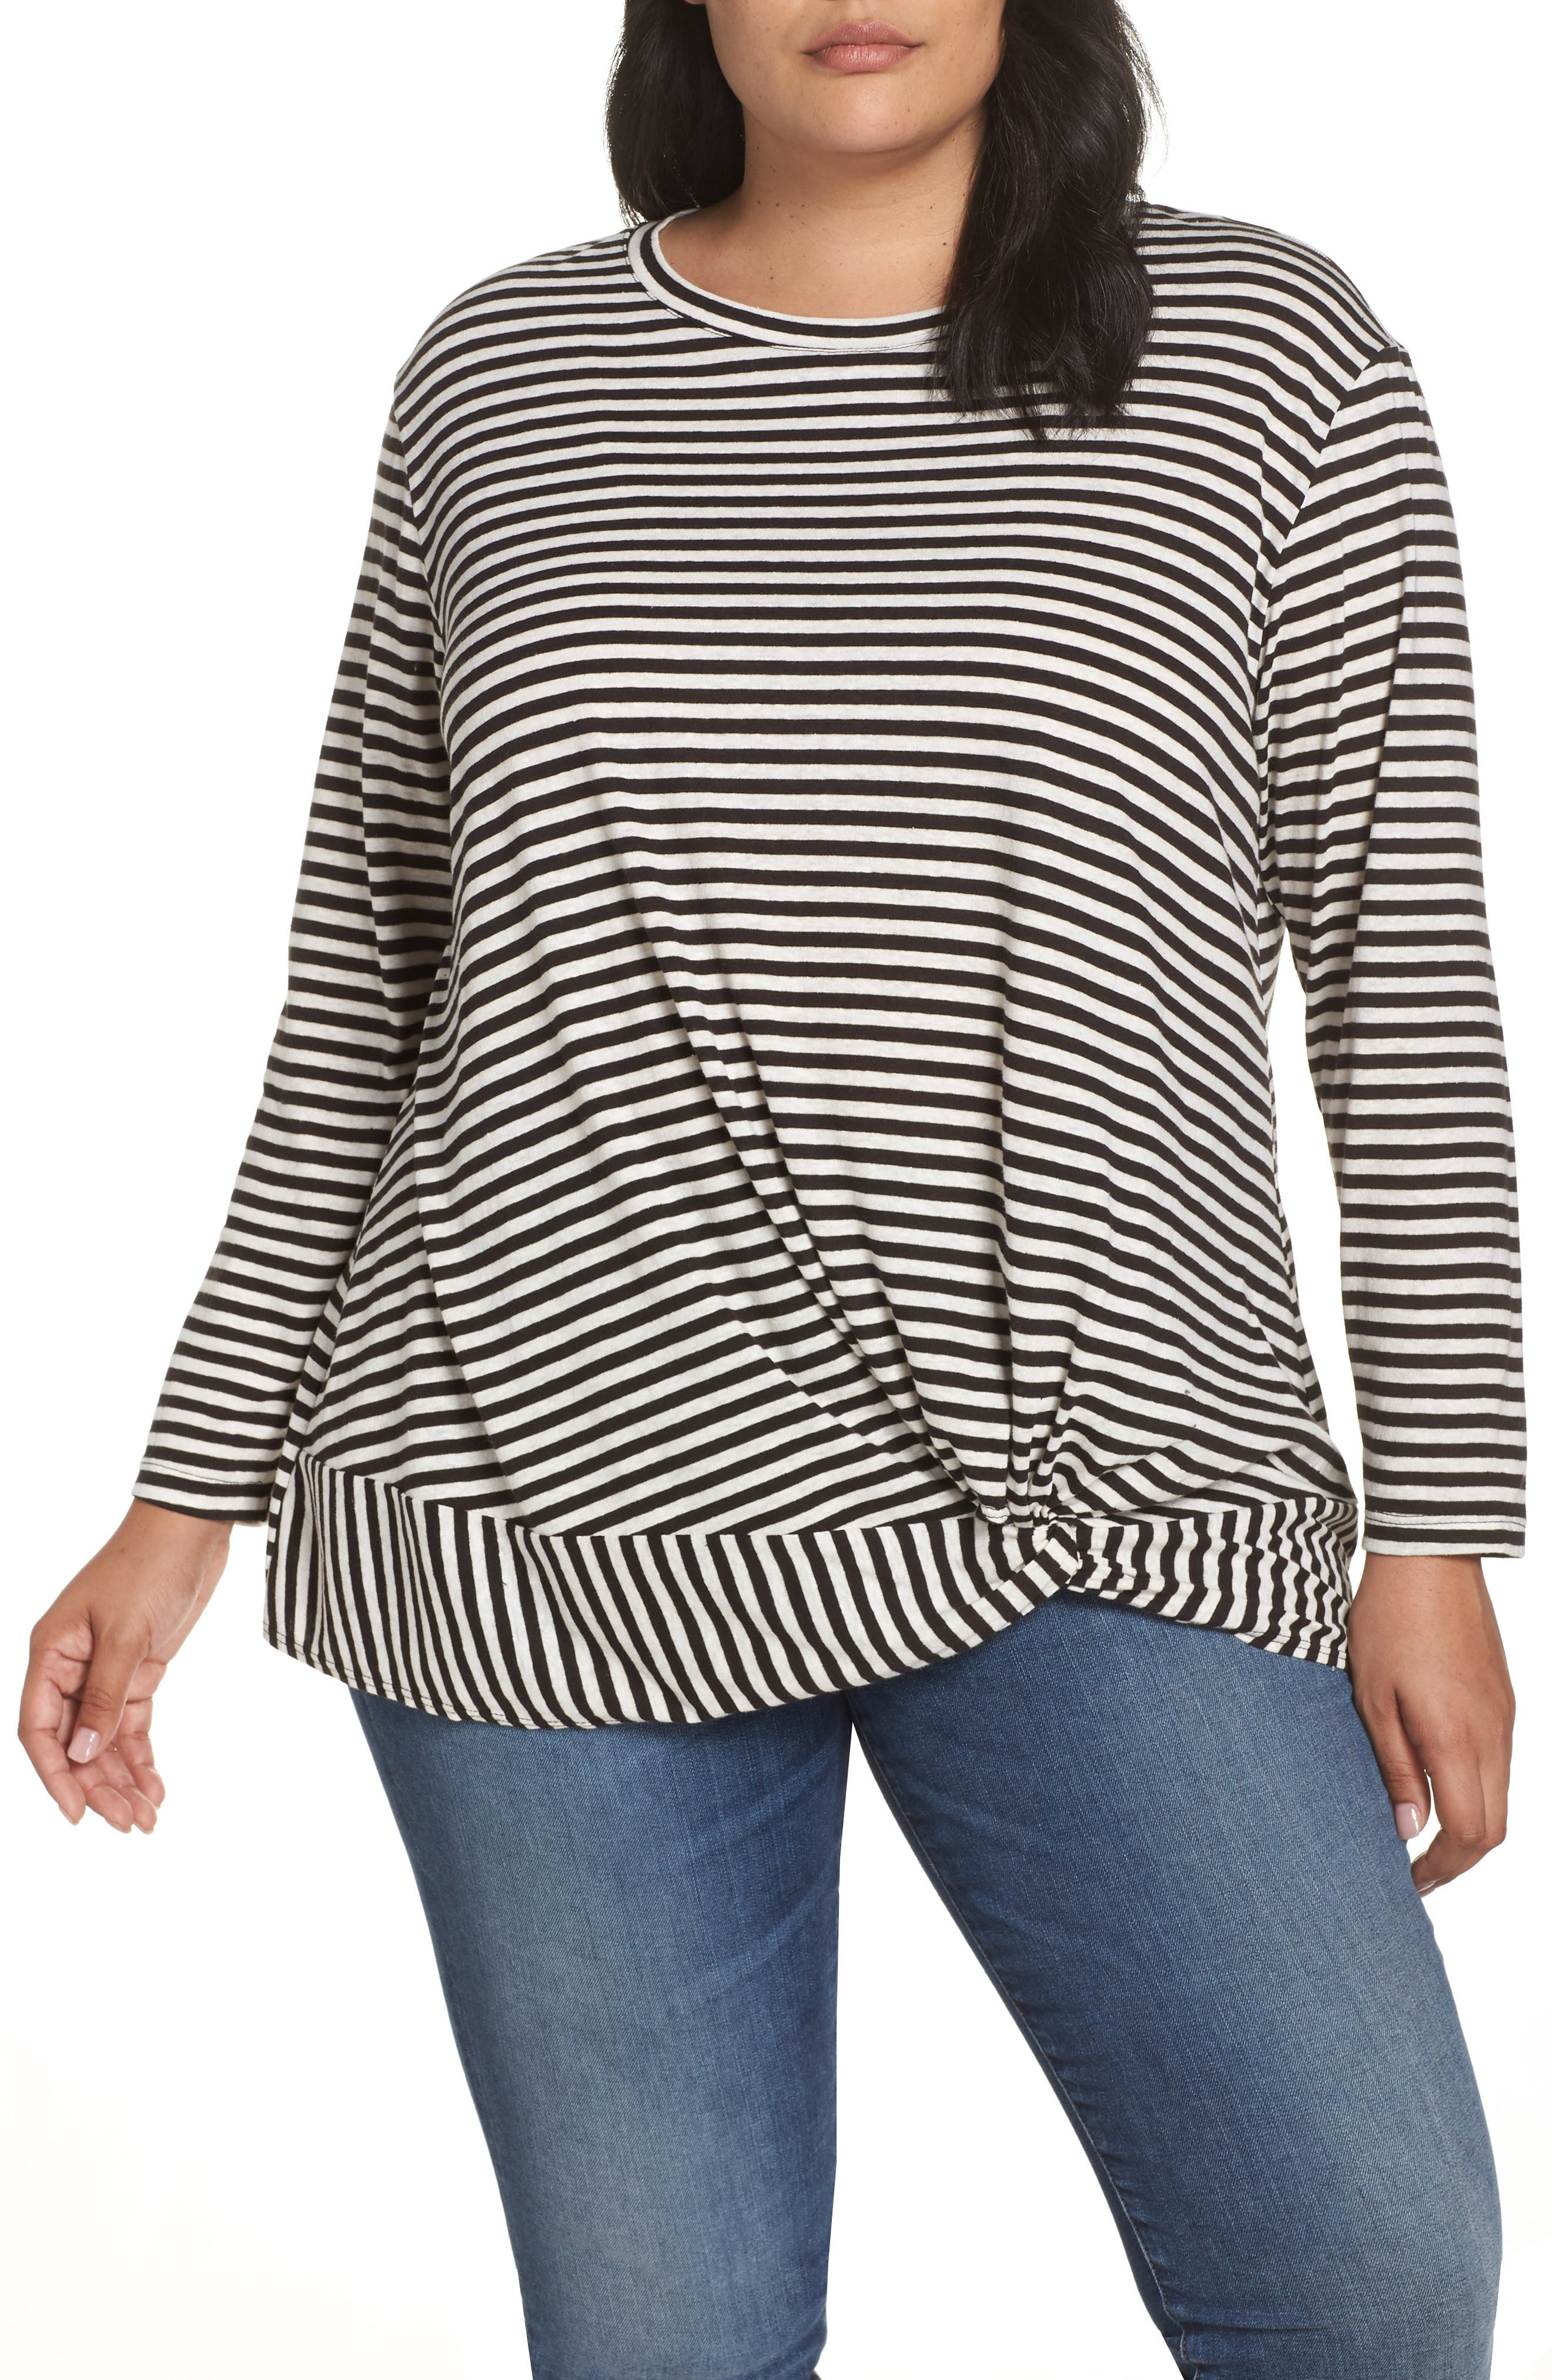 Knot Front Long Sleeve Tee,                             Main thumbnail 1, color,                             IVORY- BLACK EVEN STRIPE